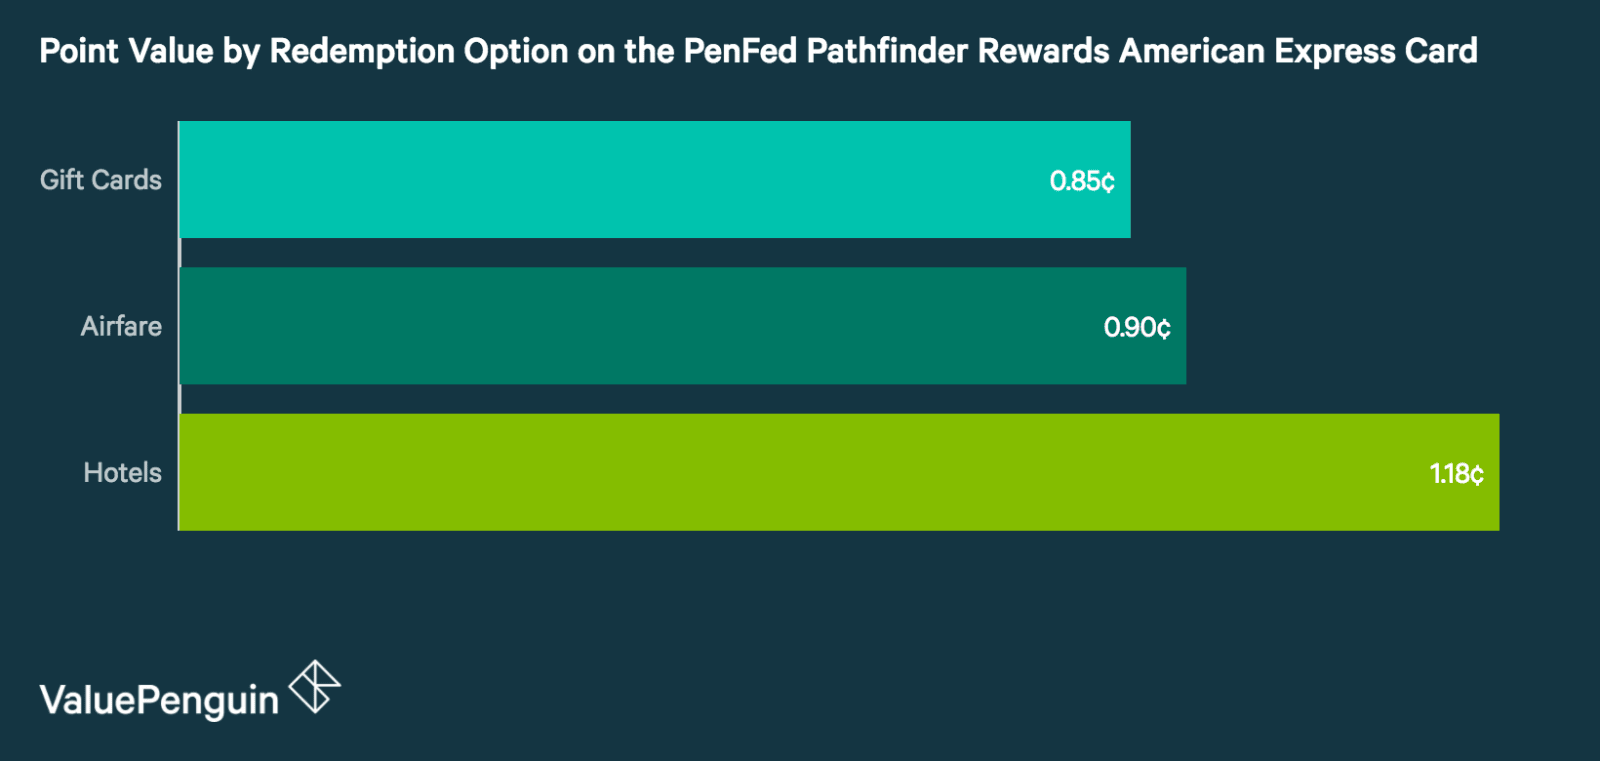 PenFed Pathfinder Rewards American Express Card: A Fantastic